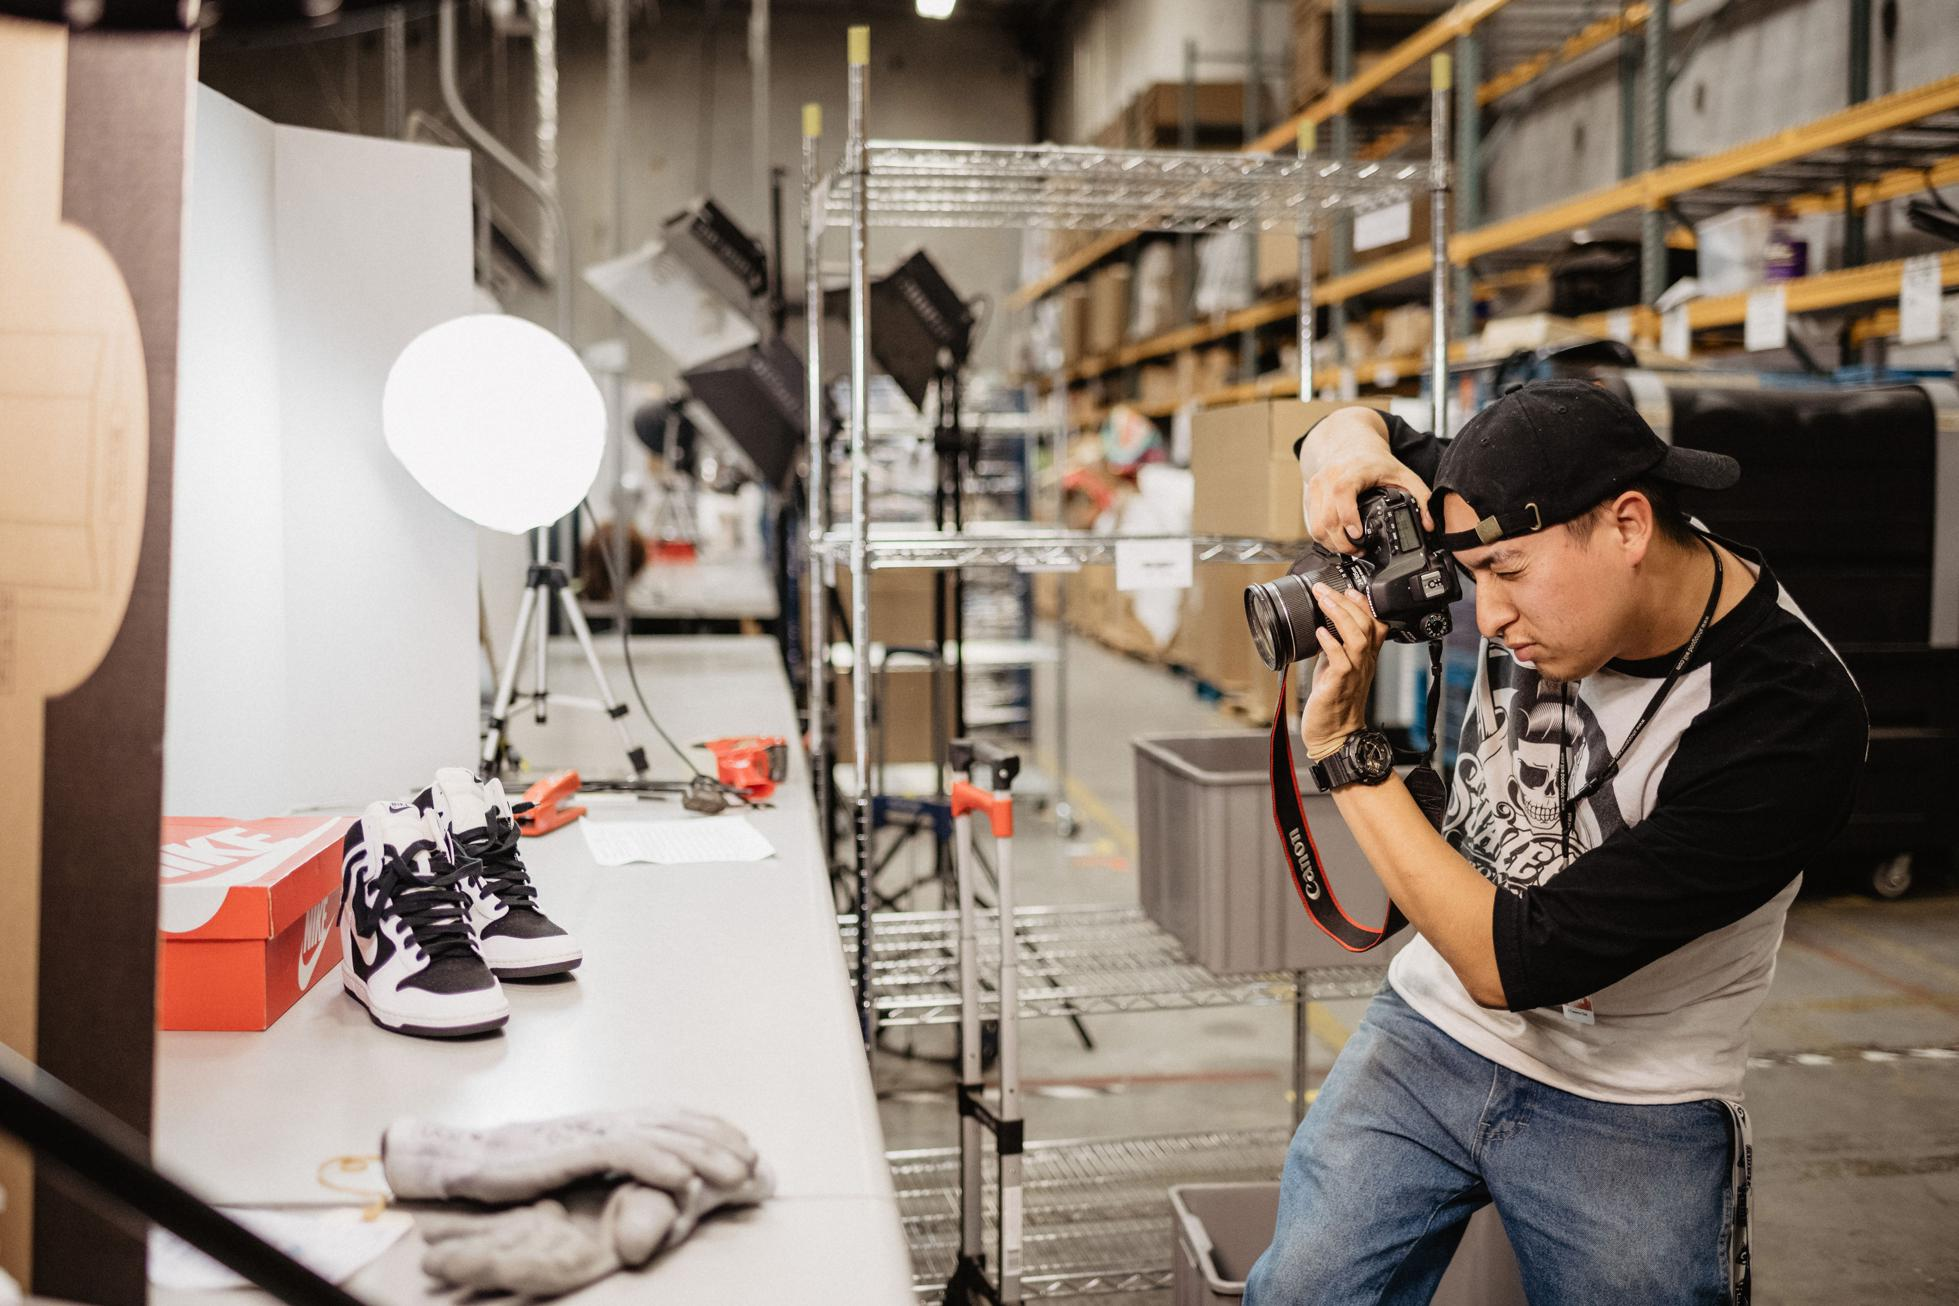 Workers are trained to photograph and list items for sale online. Its top three categories: Jewelry, clothing and accessories and electronics.